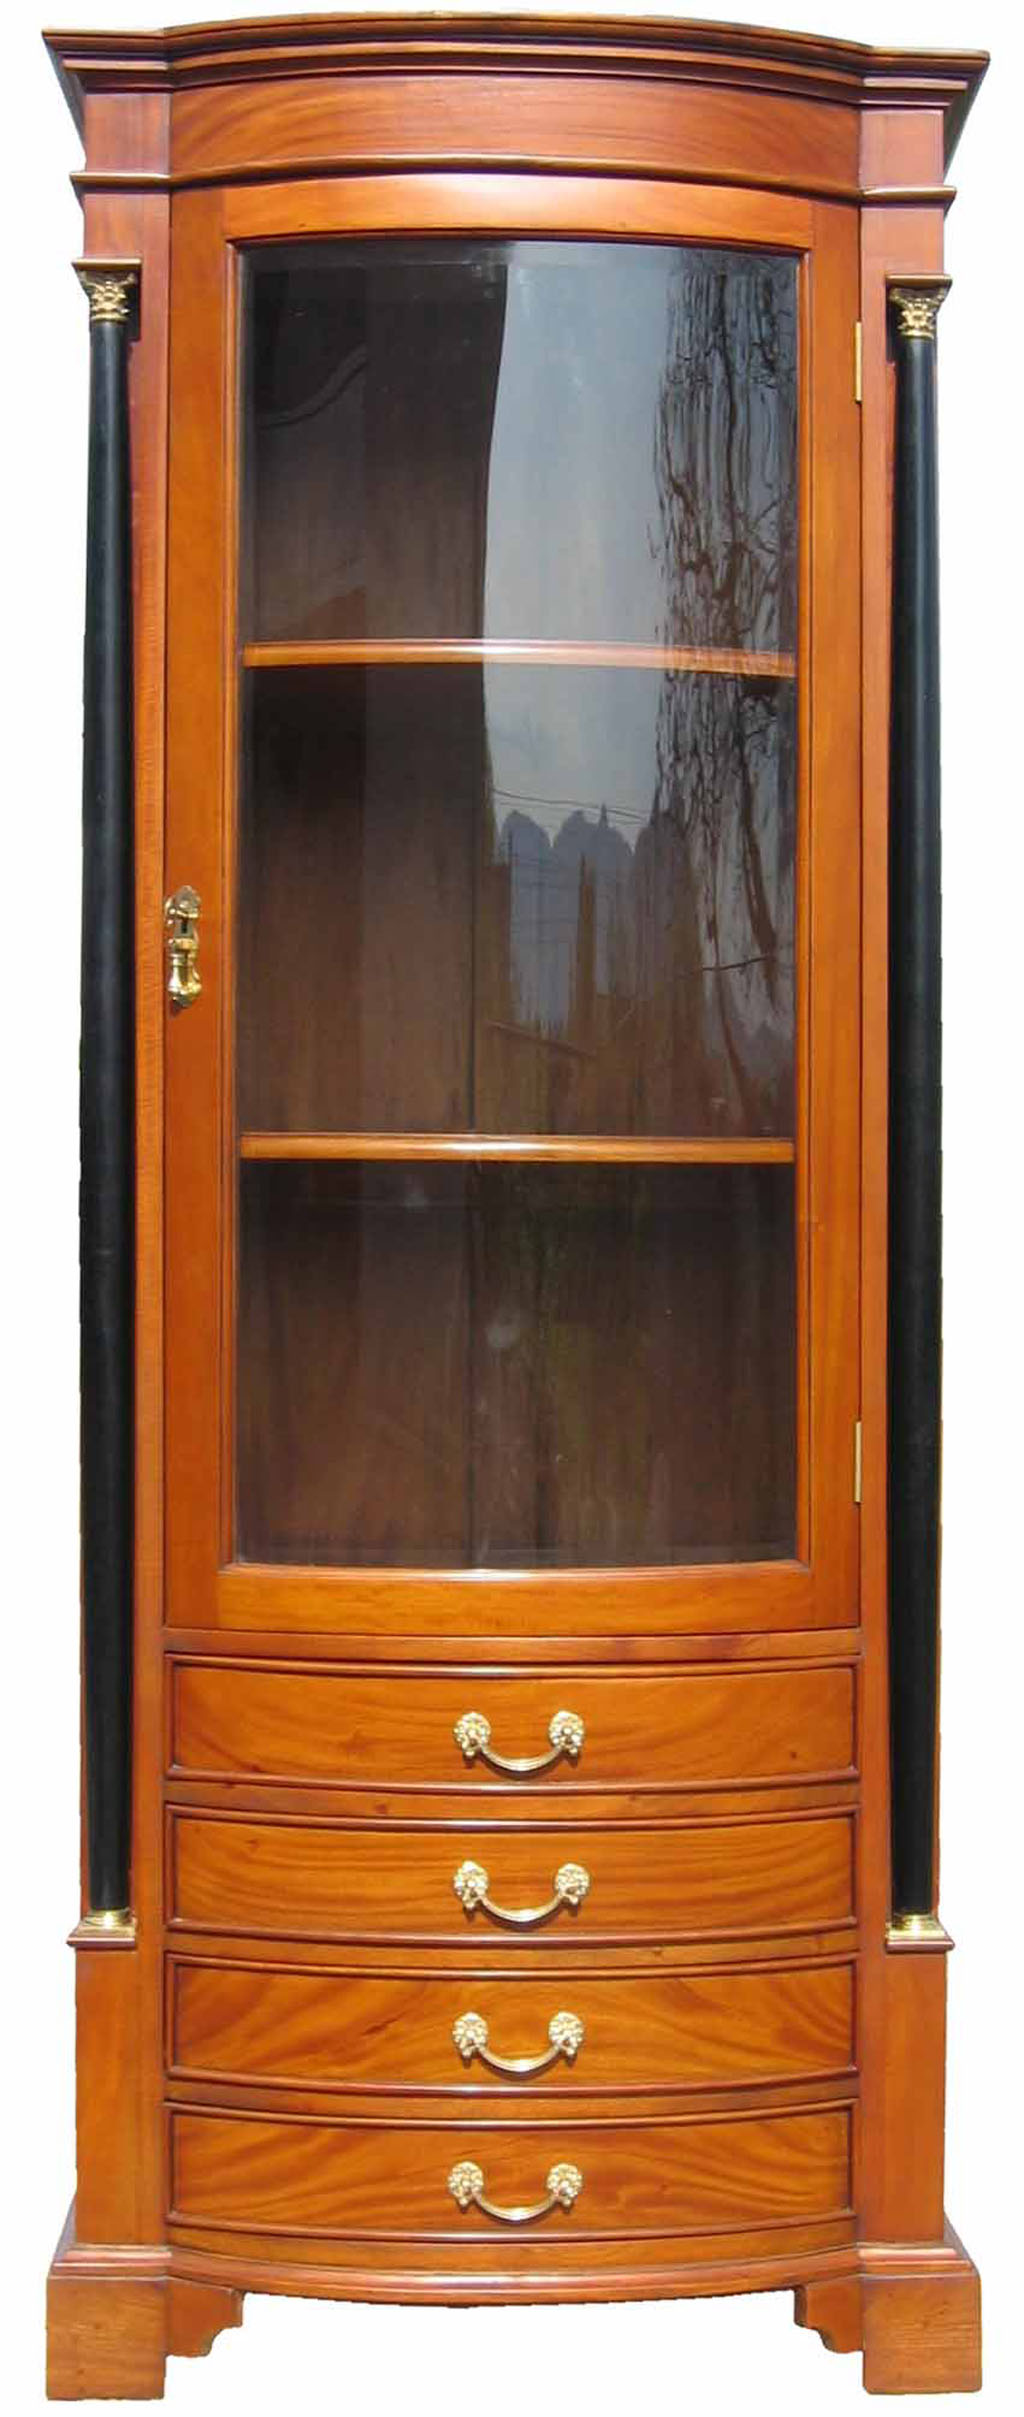 vitrine biedermeier antik m bel kirsche massiv. Black Bedroom Furniture Sets. Home Design Ideas